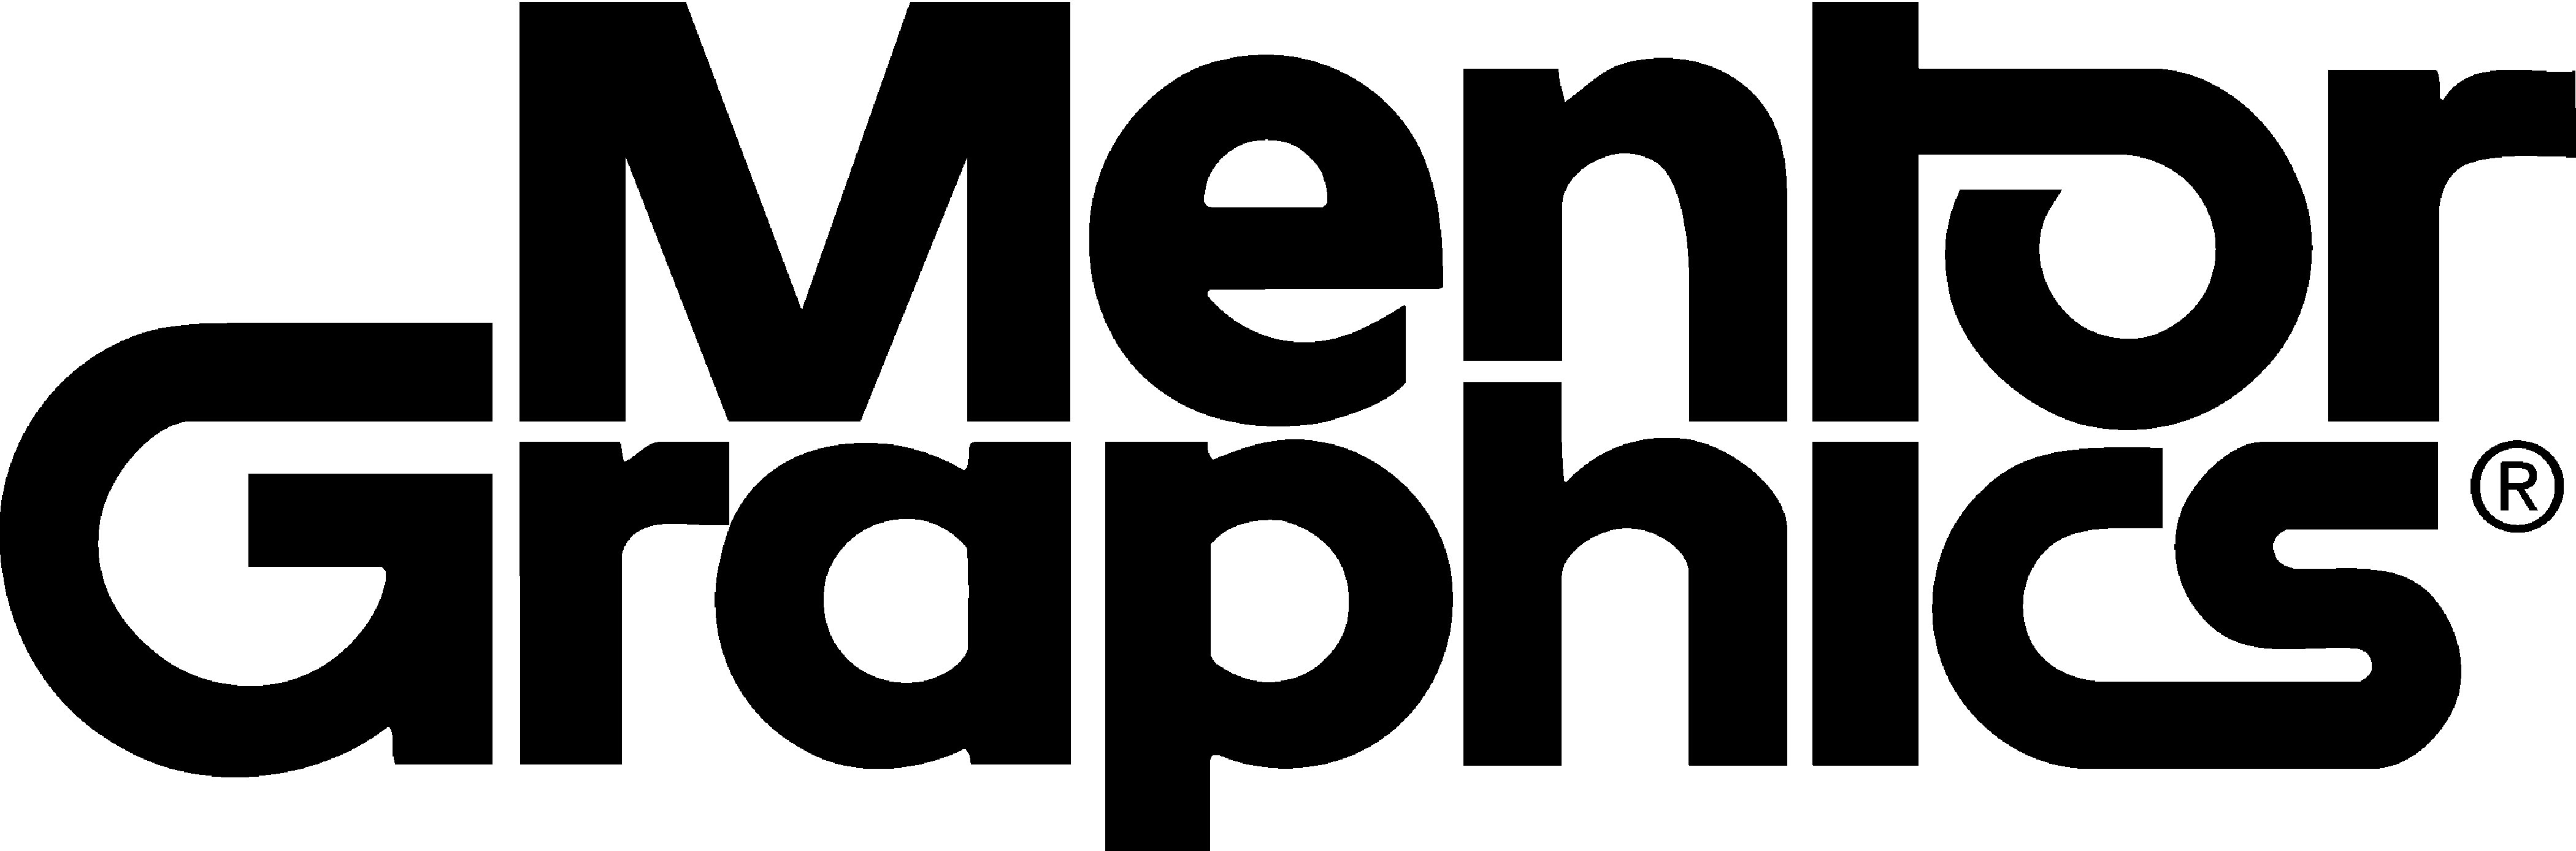 Mentor Graphics Corp. logo